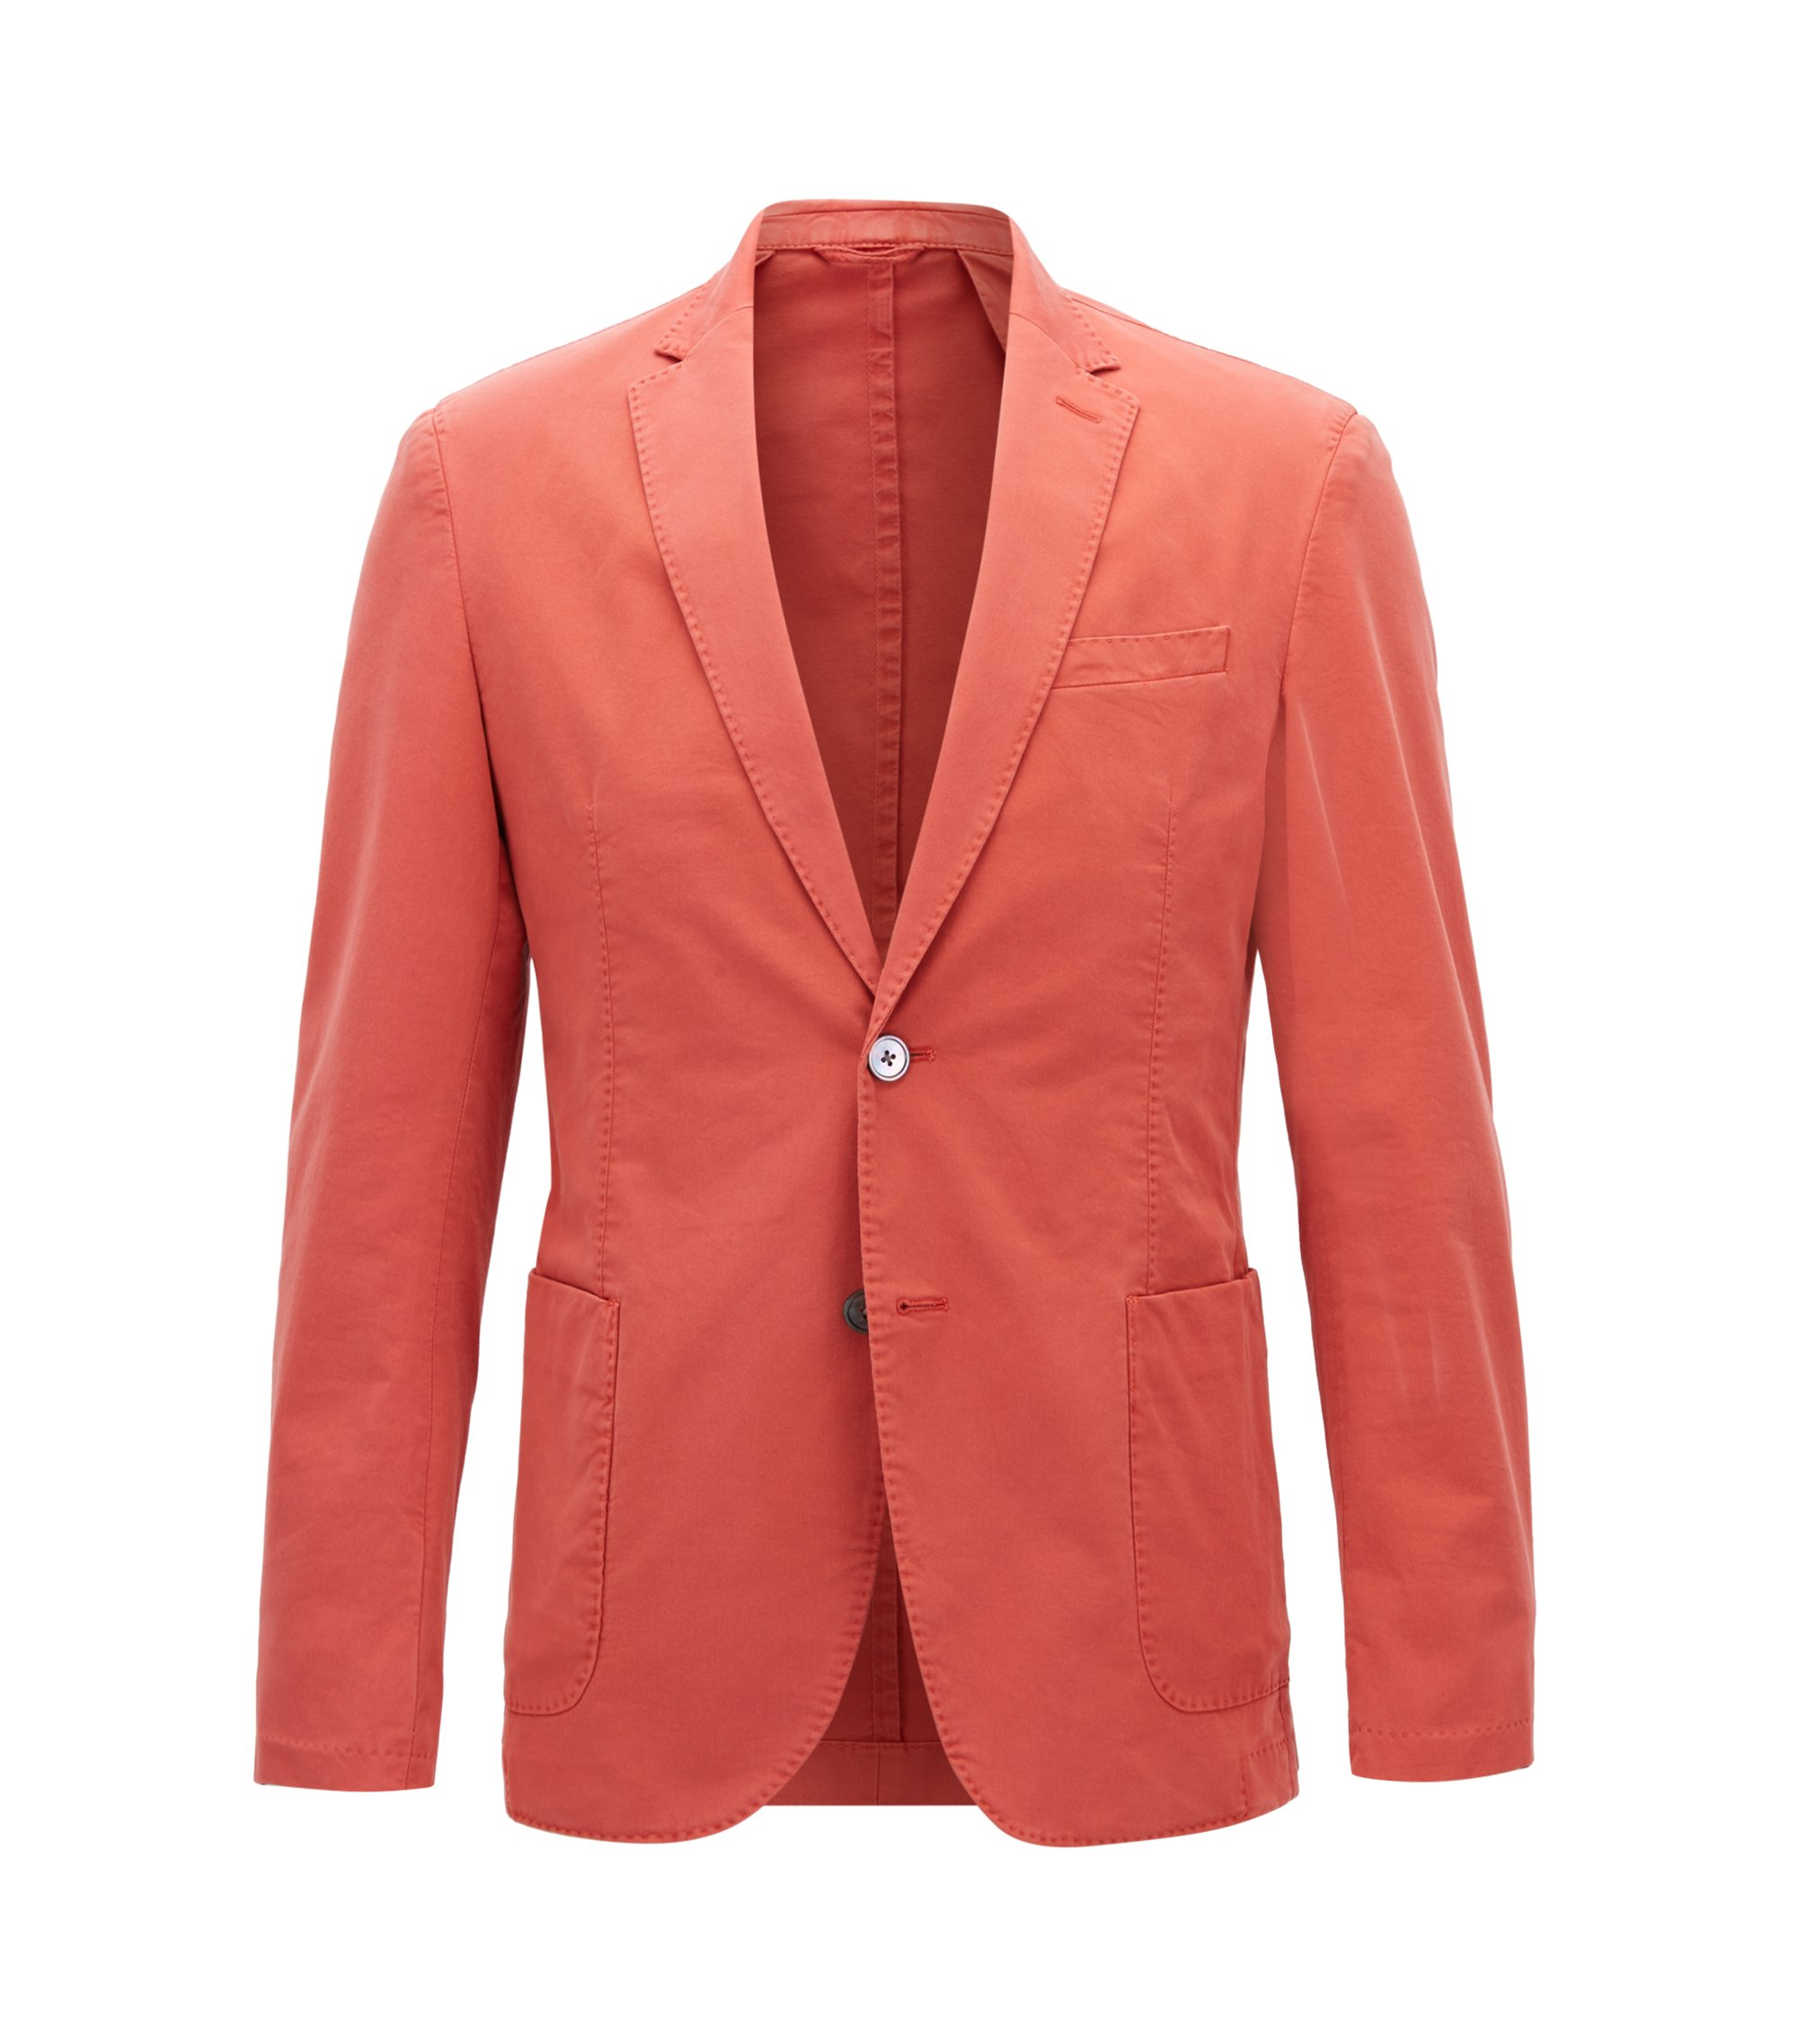 Garment-Dyed Stretch Cotton Sport Coat, Slim Fit | Hanry D, Dark Orange